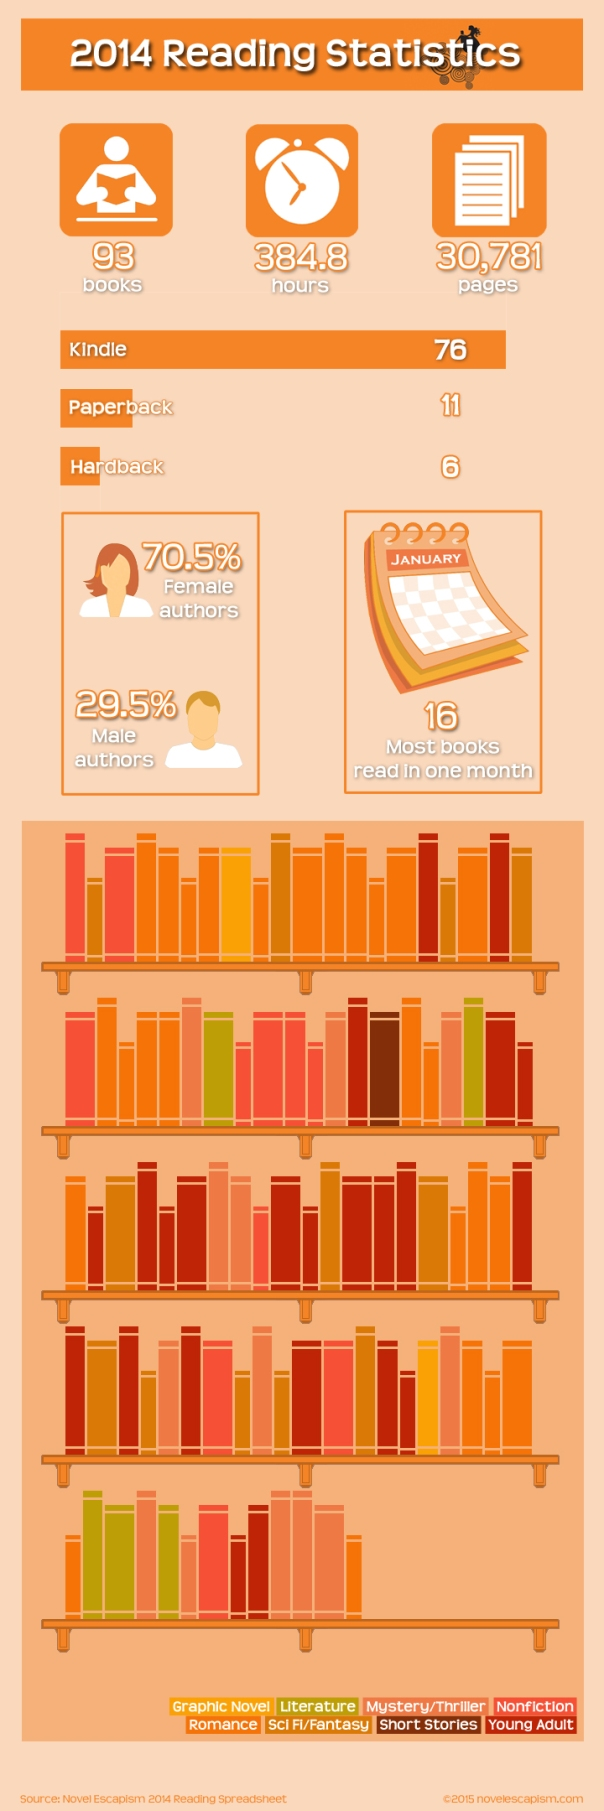 2014 Reading Stats Infographic